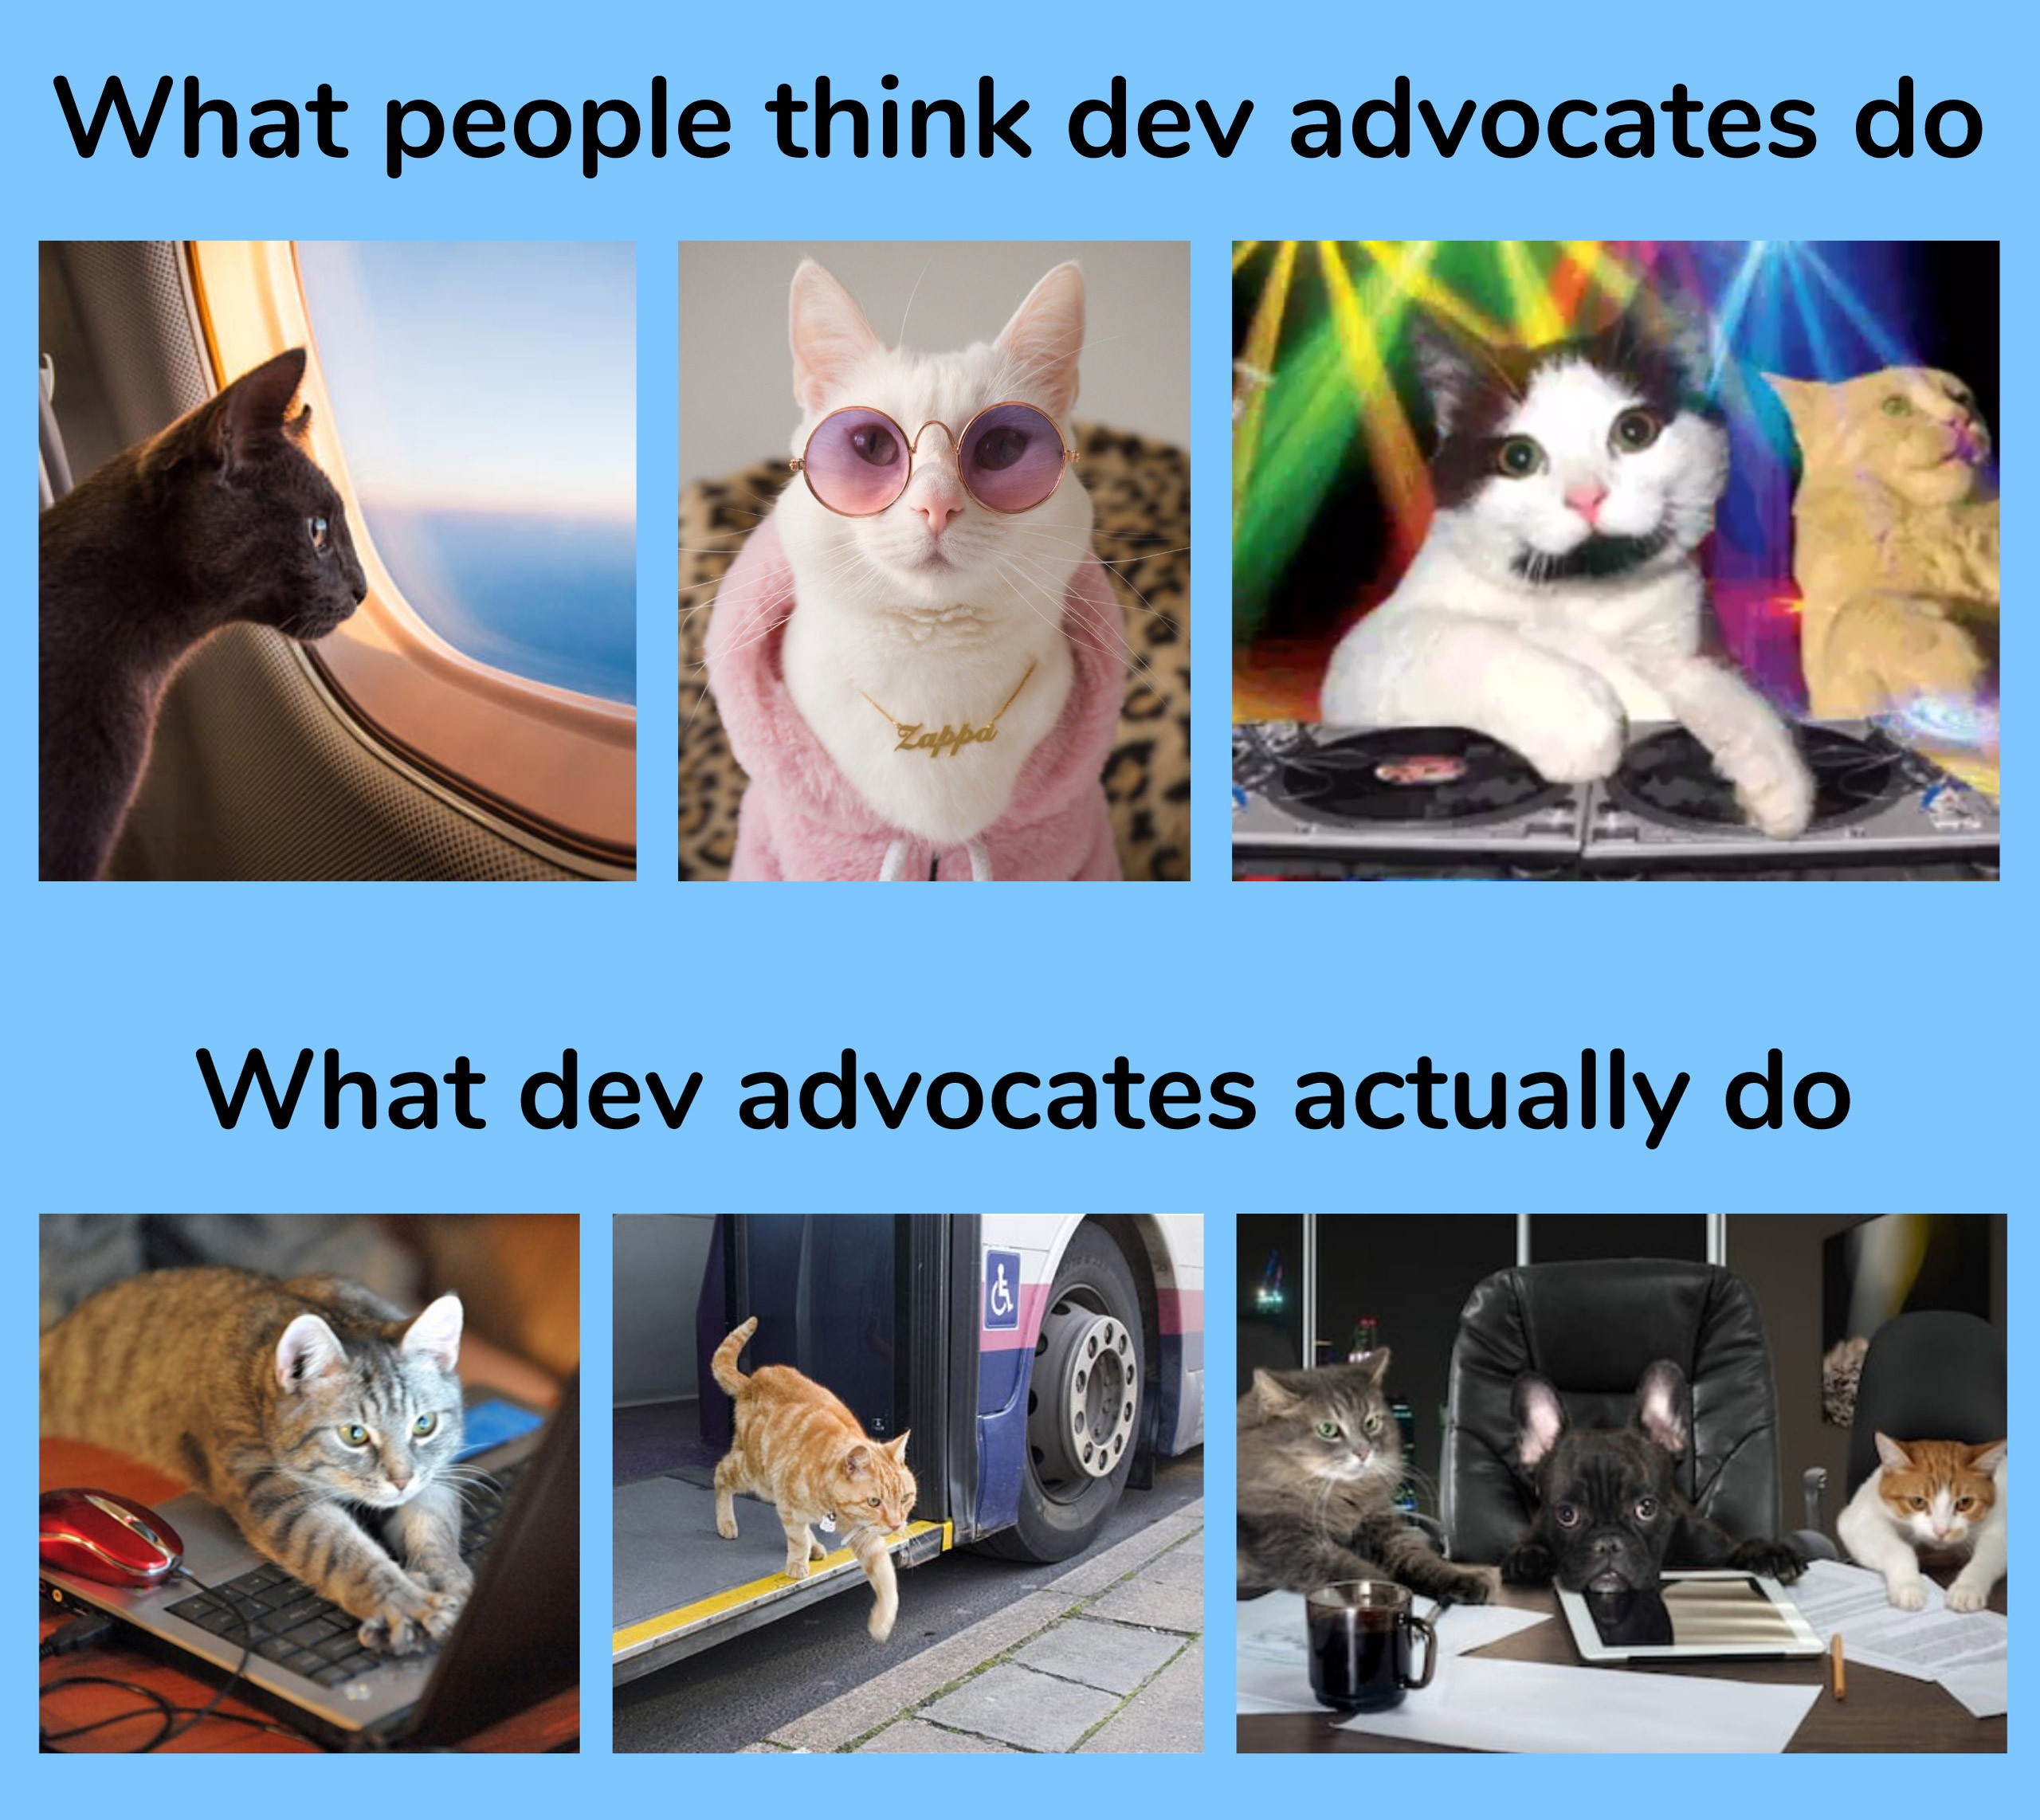 What people think dev advocates do versus what they actually do